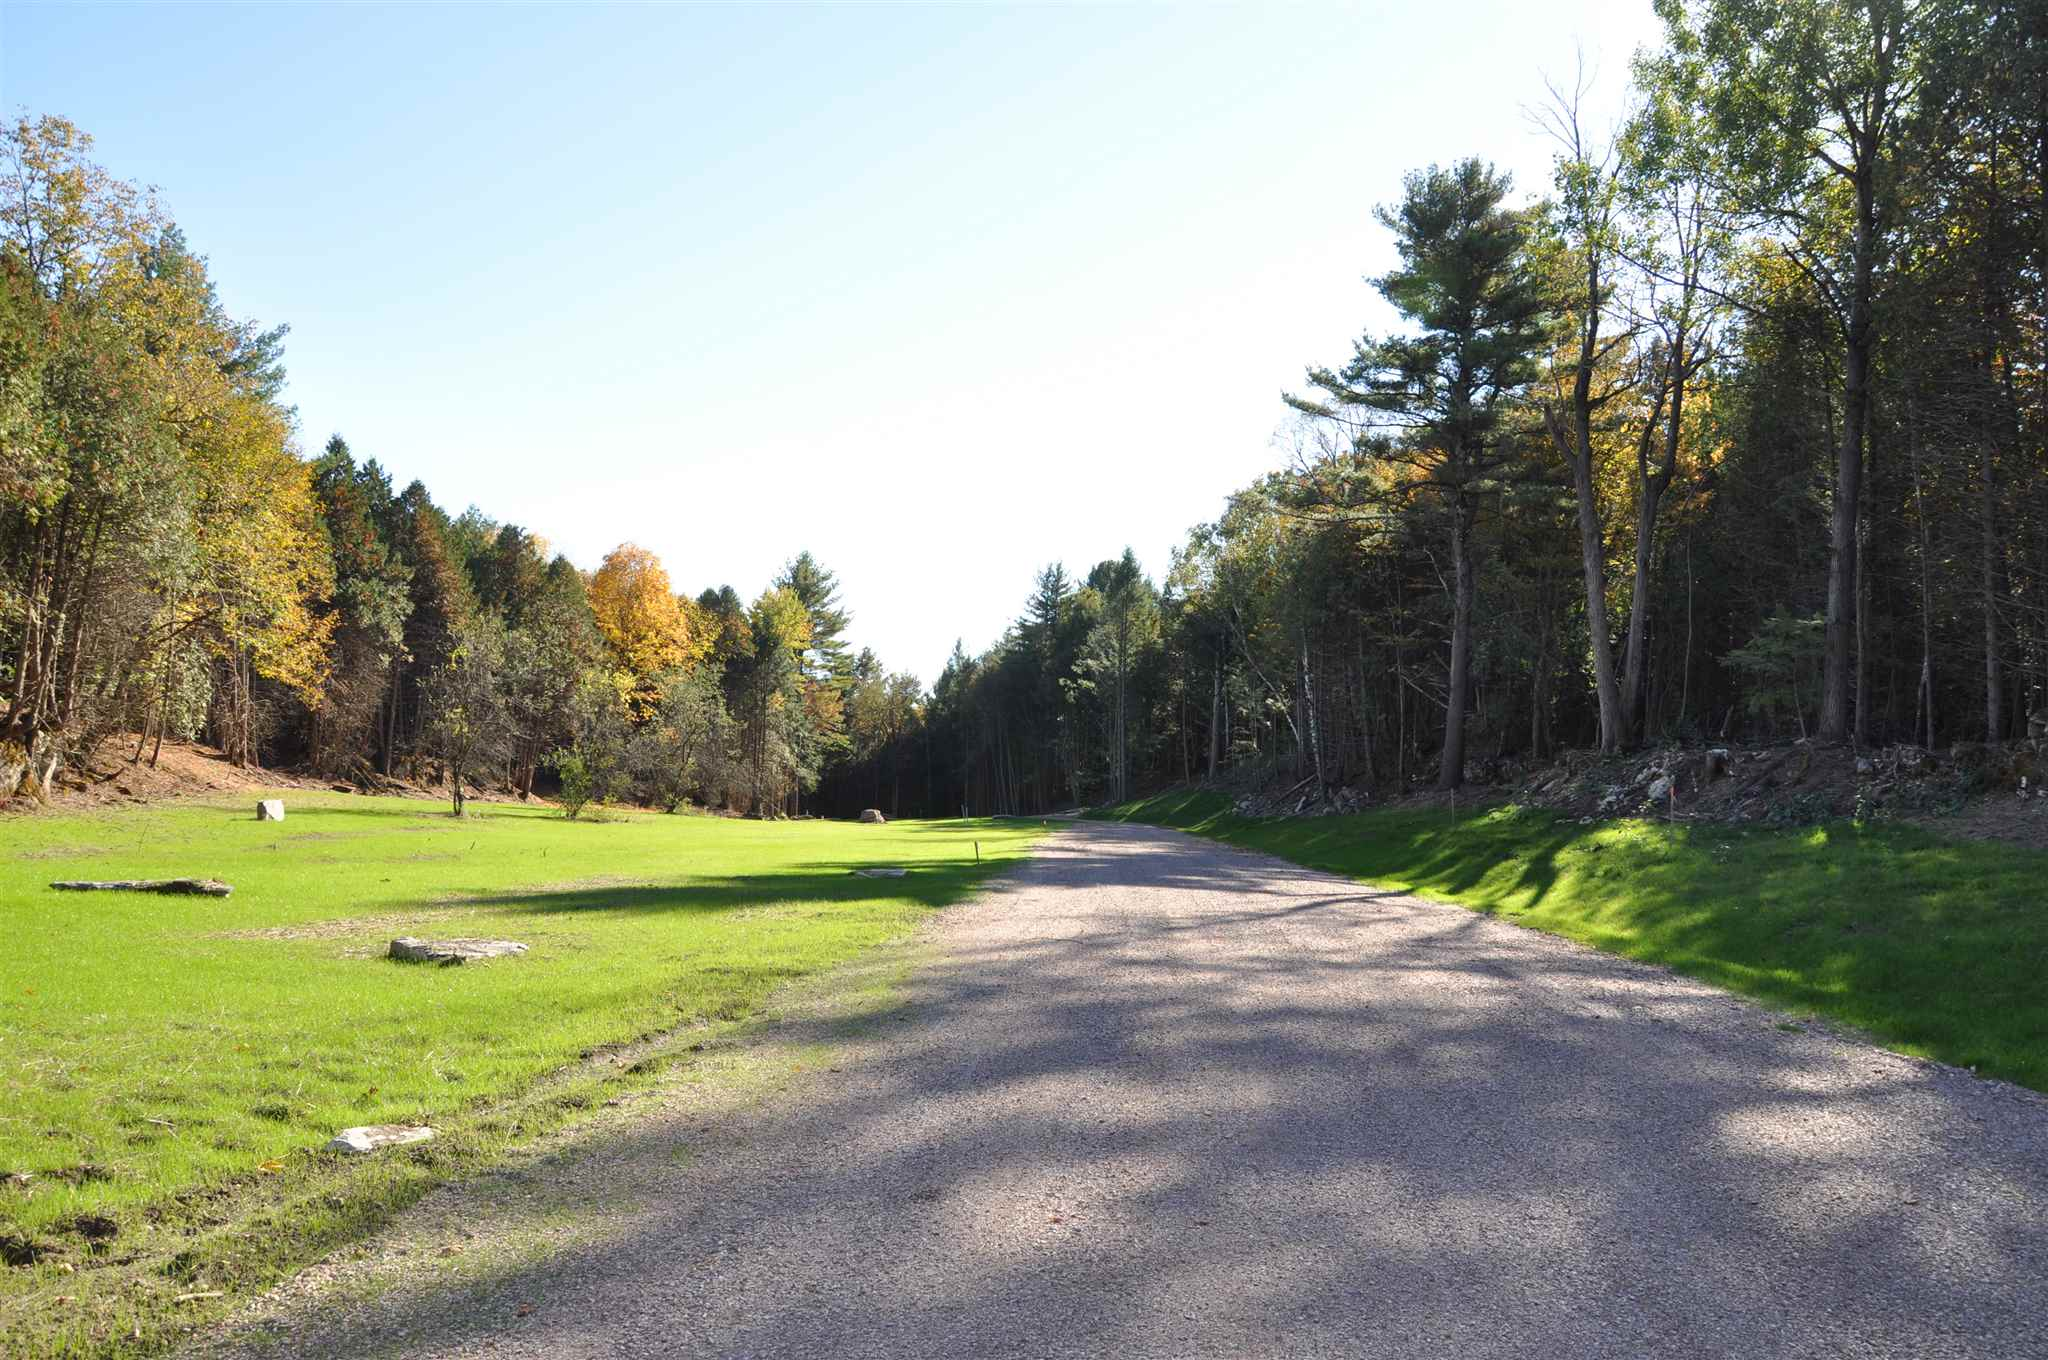 Private 3-lot community, ready to build 15.9 acre lot at Finney Ridge in Shelburne.  Lovely private wooded lot with easy access to downtown Burlington, UVM medical center and Burlington International Airport.  All permits in place, underground power at site.